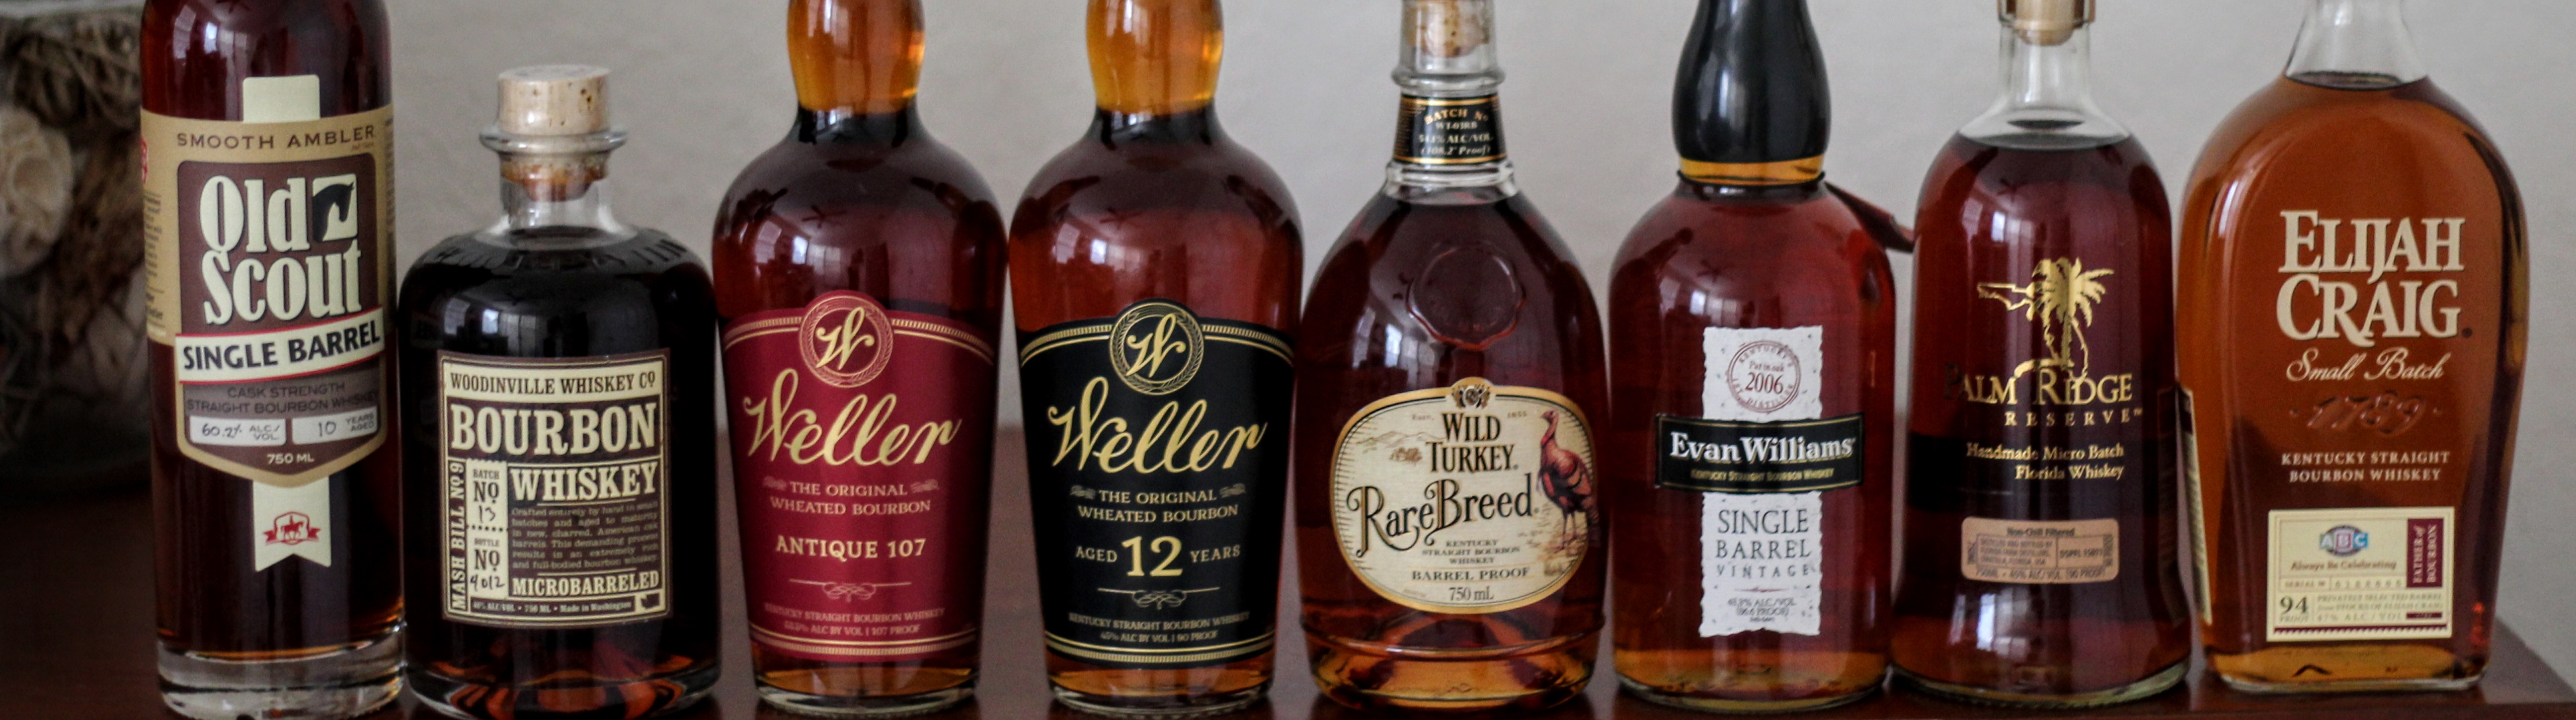 Explore Whiskey & Bourbon Sippers